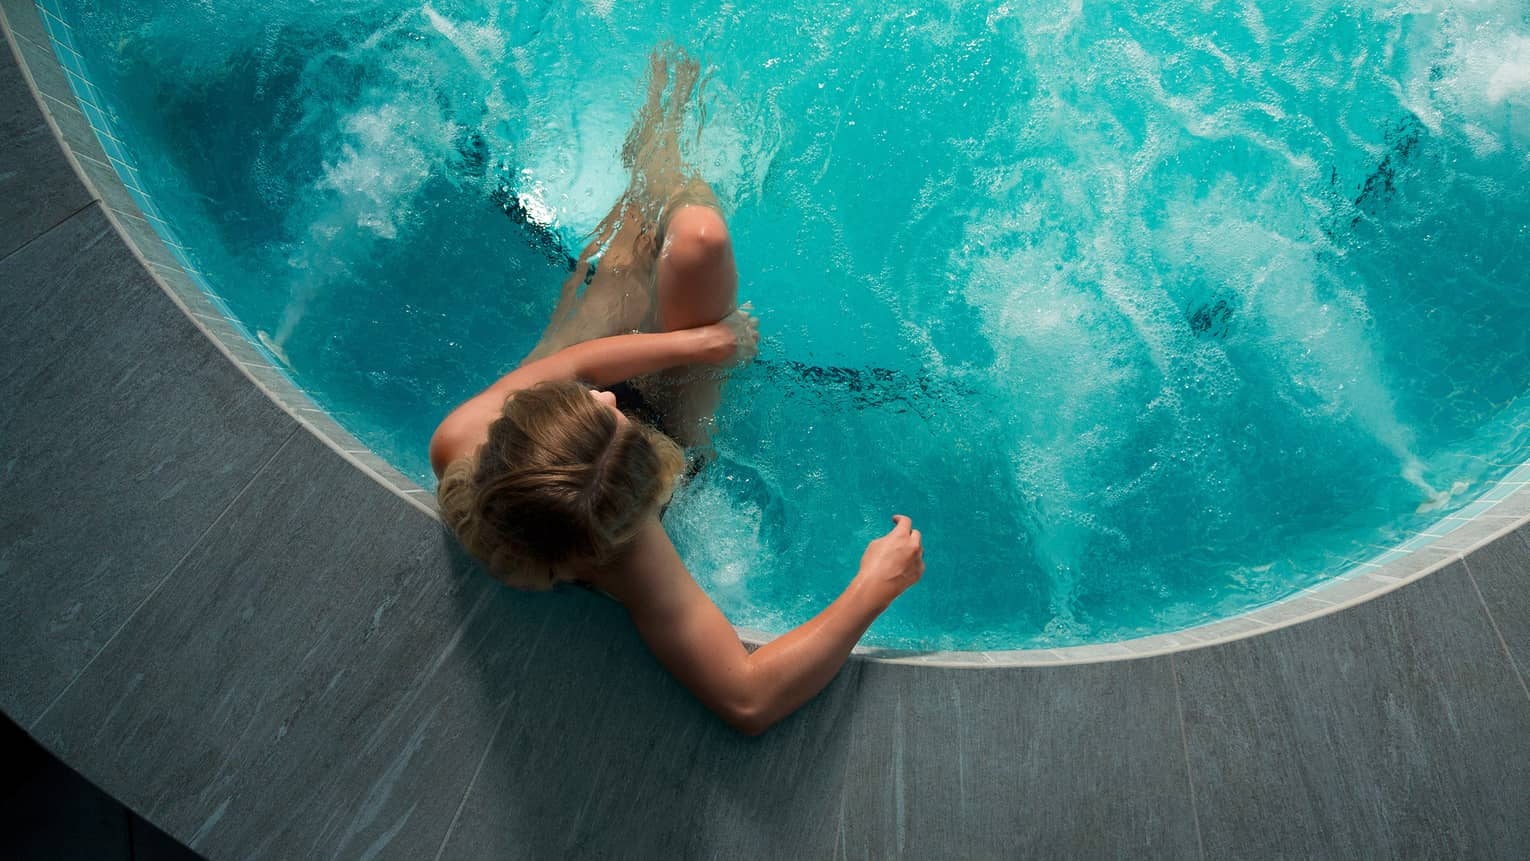 Looking down at woman sitting in round hot tub with blue water